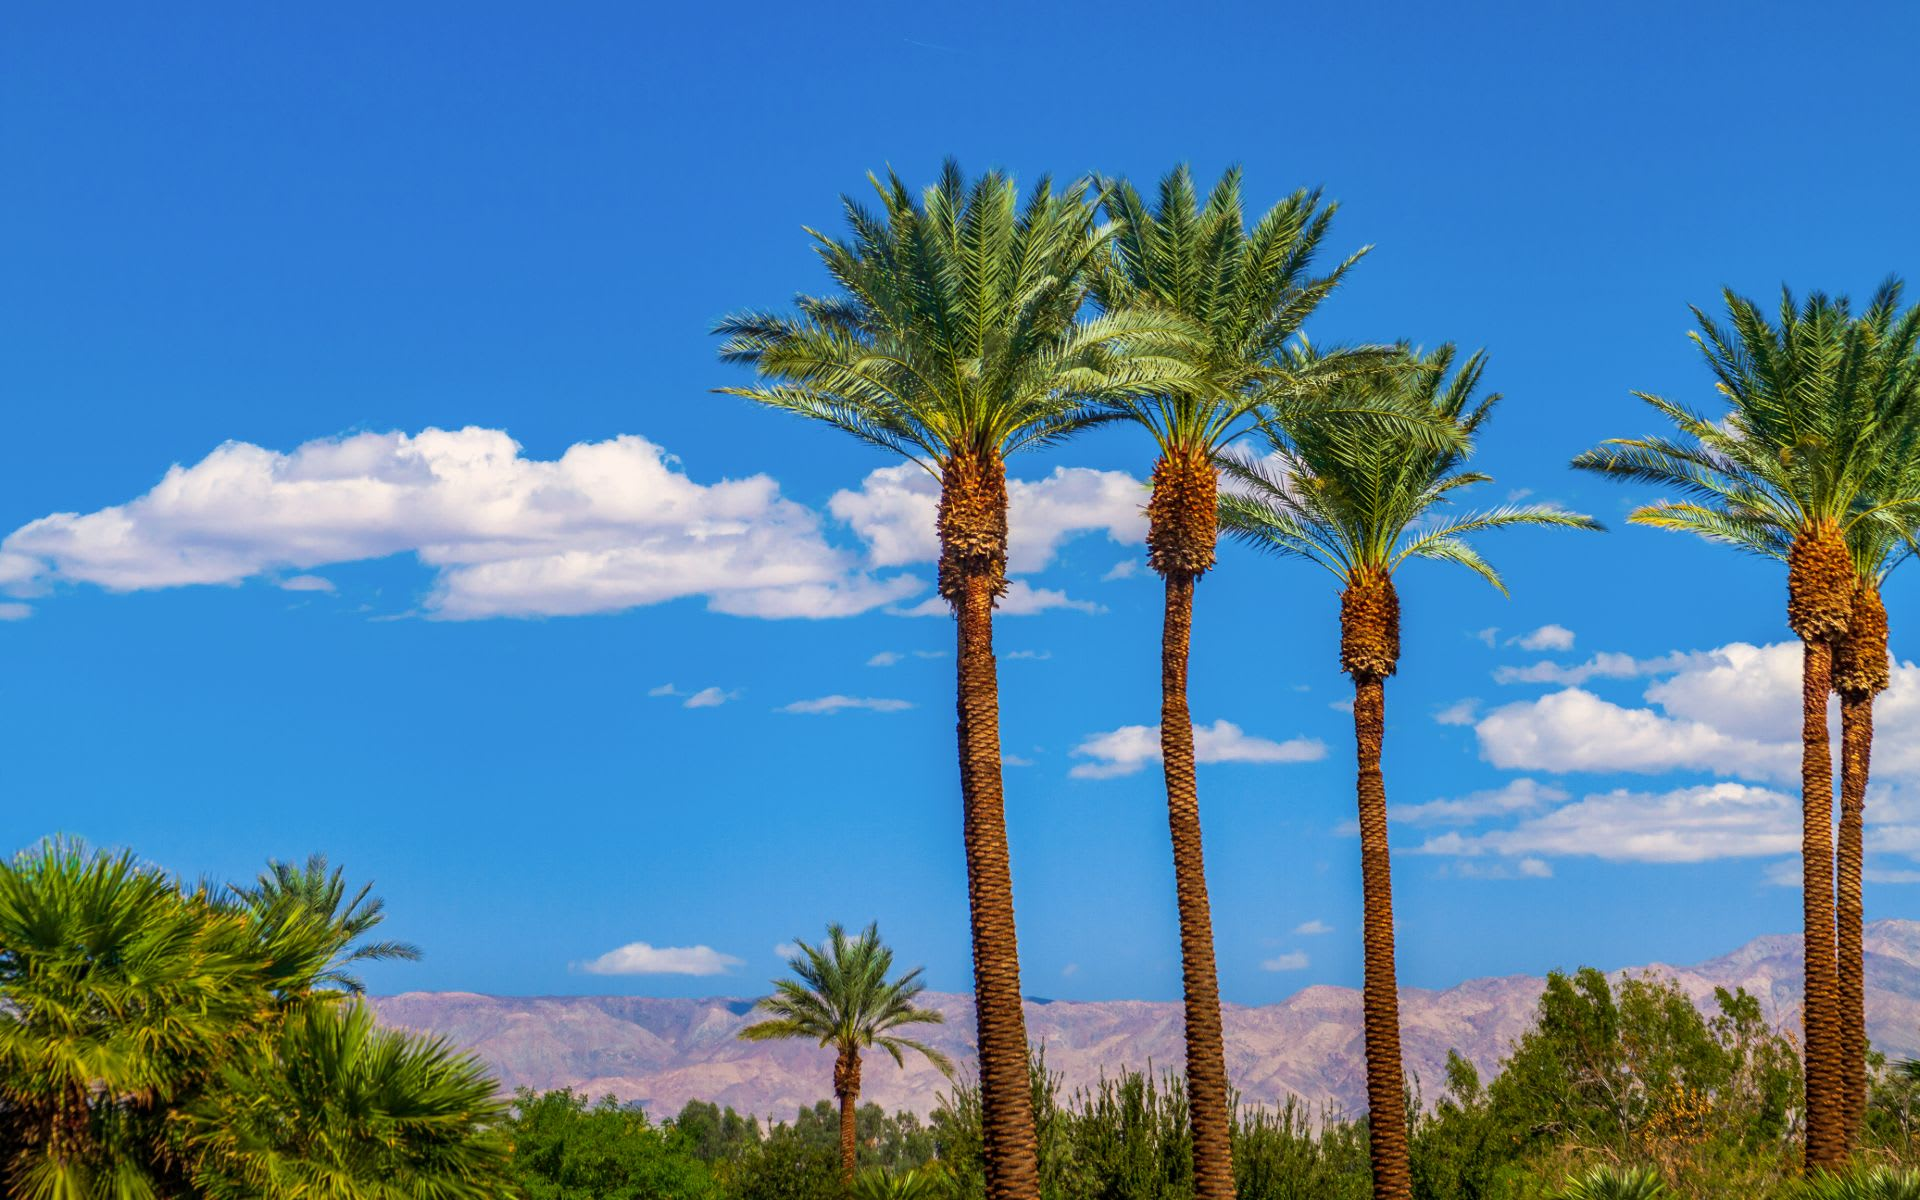 Rancho Mirage image